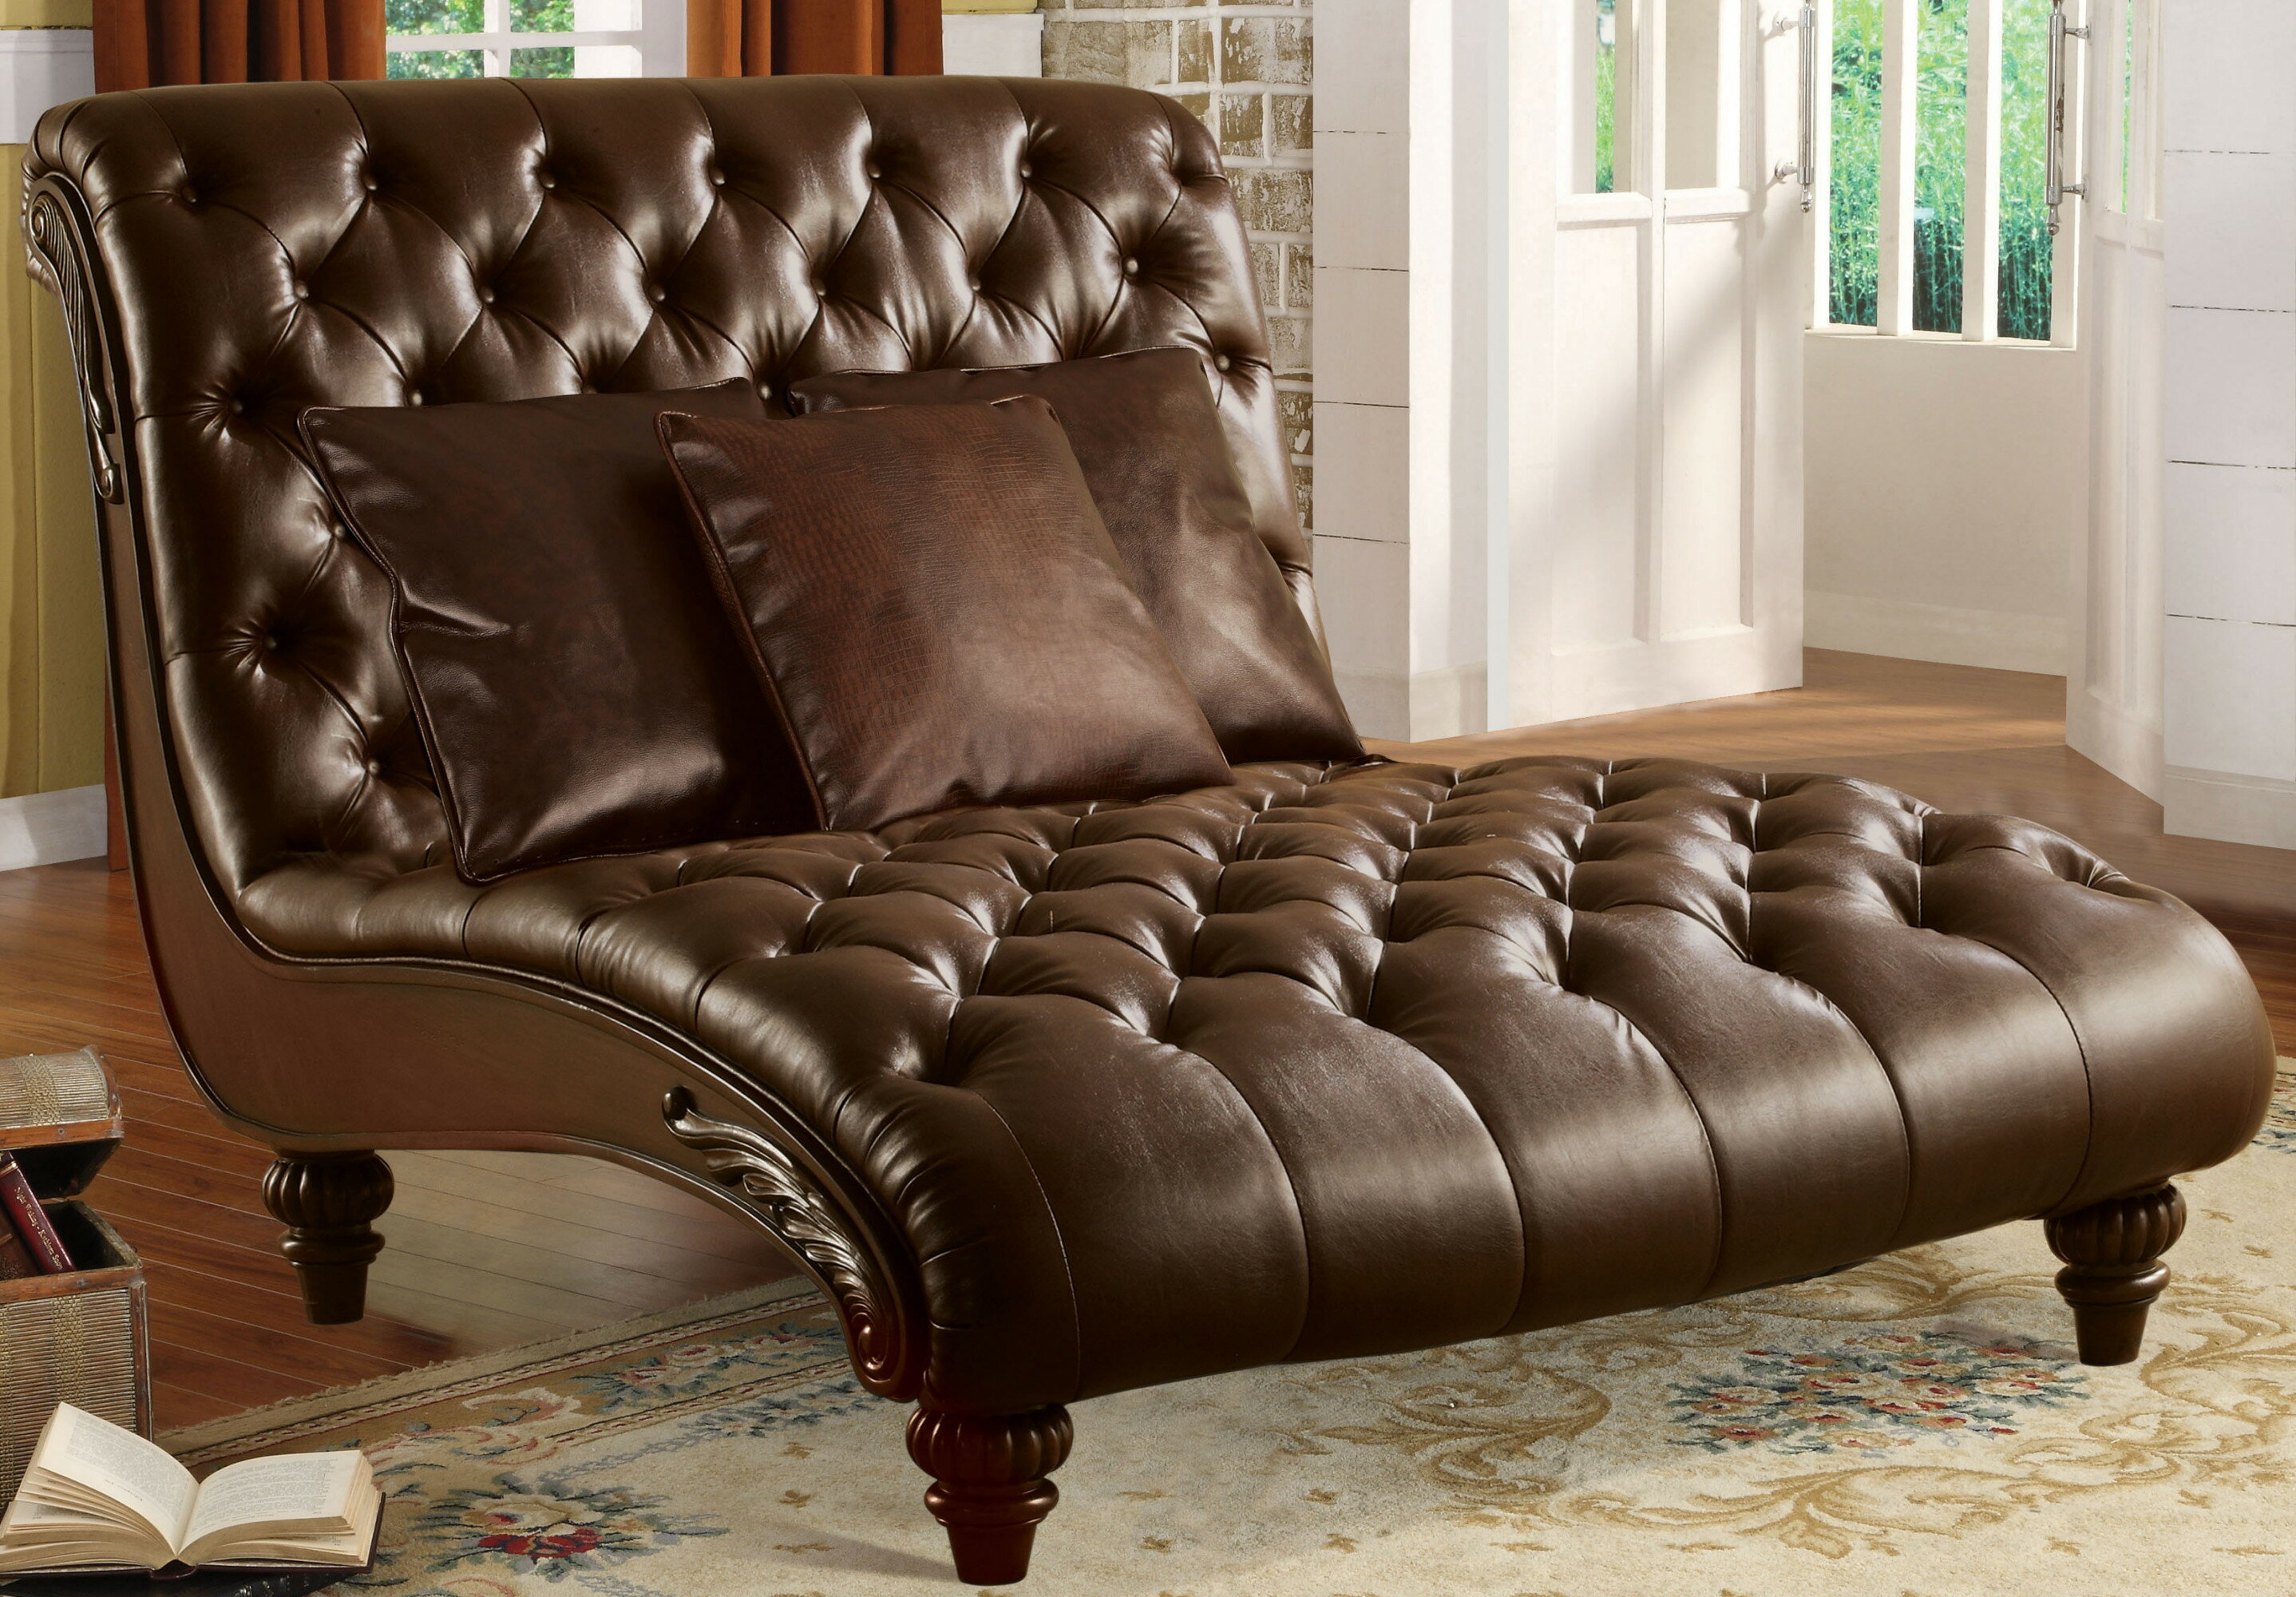 Collingwood Chaise Lounge